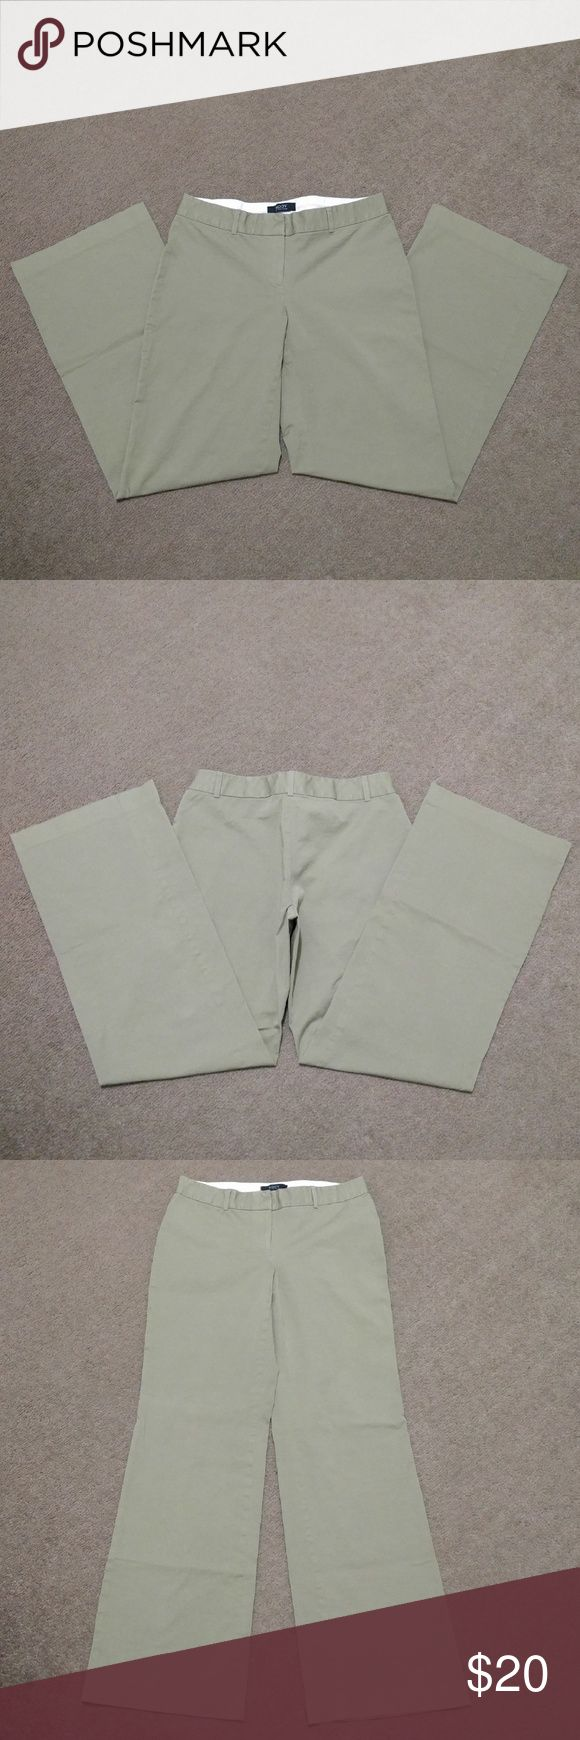 """Body By Victoria Marisa Fit Khaki Pants 6 Body By Victoria Marisa Fit Khaki Pants  Women's Size: 6  Lightly worn but still in great condition!  No holes, rips or frays.  Freshly laundered, smoke free home.  Waist: 15 3/4"""" lying flat (31 1/2"""" doubled)  Rise: 8""""  Inseam:? 31 3/4""""  Bottom Leg Opening:? 10.5"""" across  Tags: Victoria's Secret beige khaki dress trouser wide leg pants Victoria's Secret Pants Trousers"""